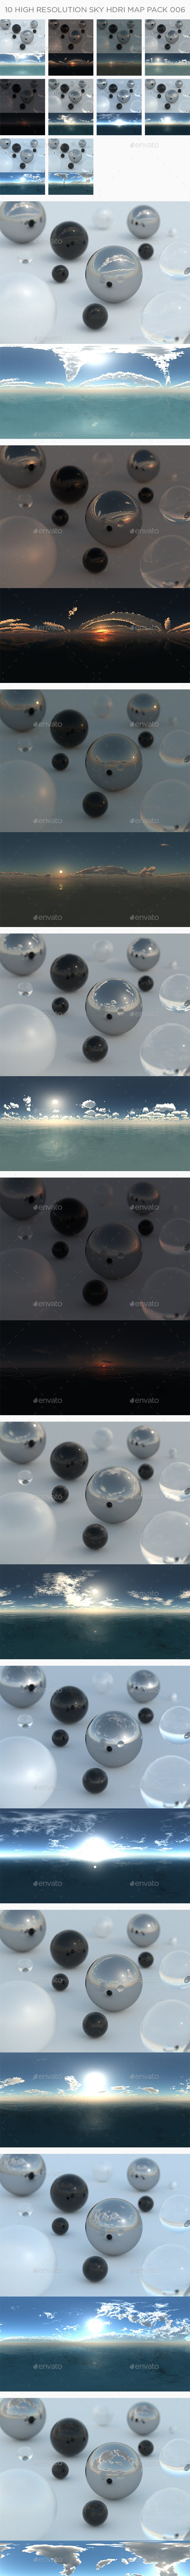 10 High Resolution Sky HDRi Maps Pack 006 - 3DOcean Item for Sale